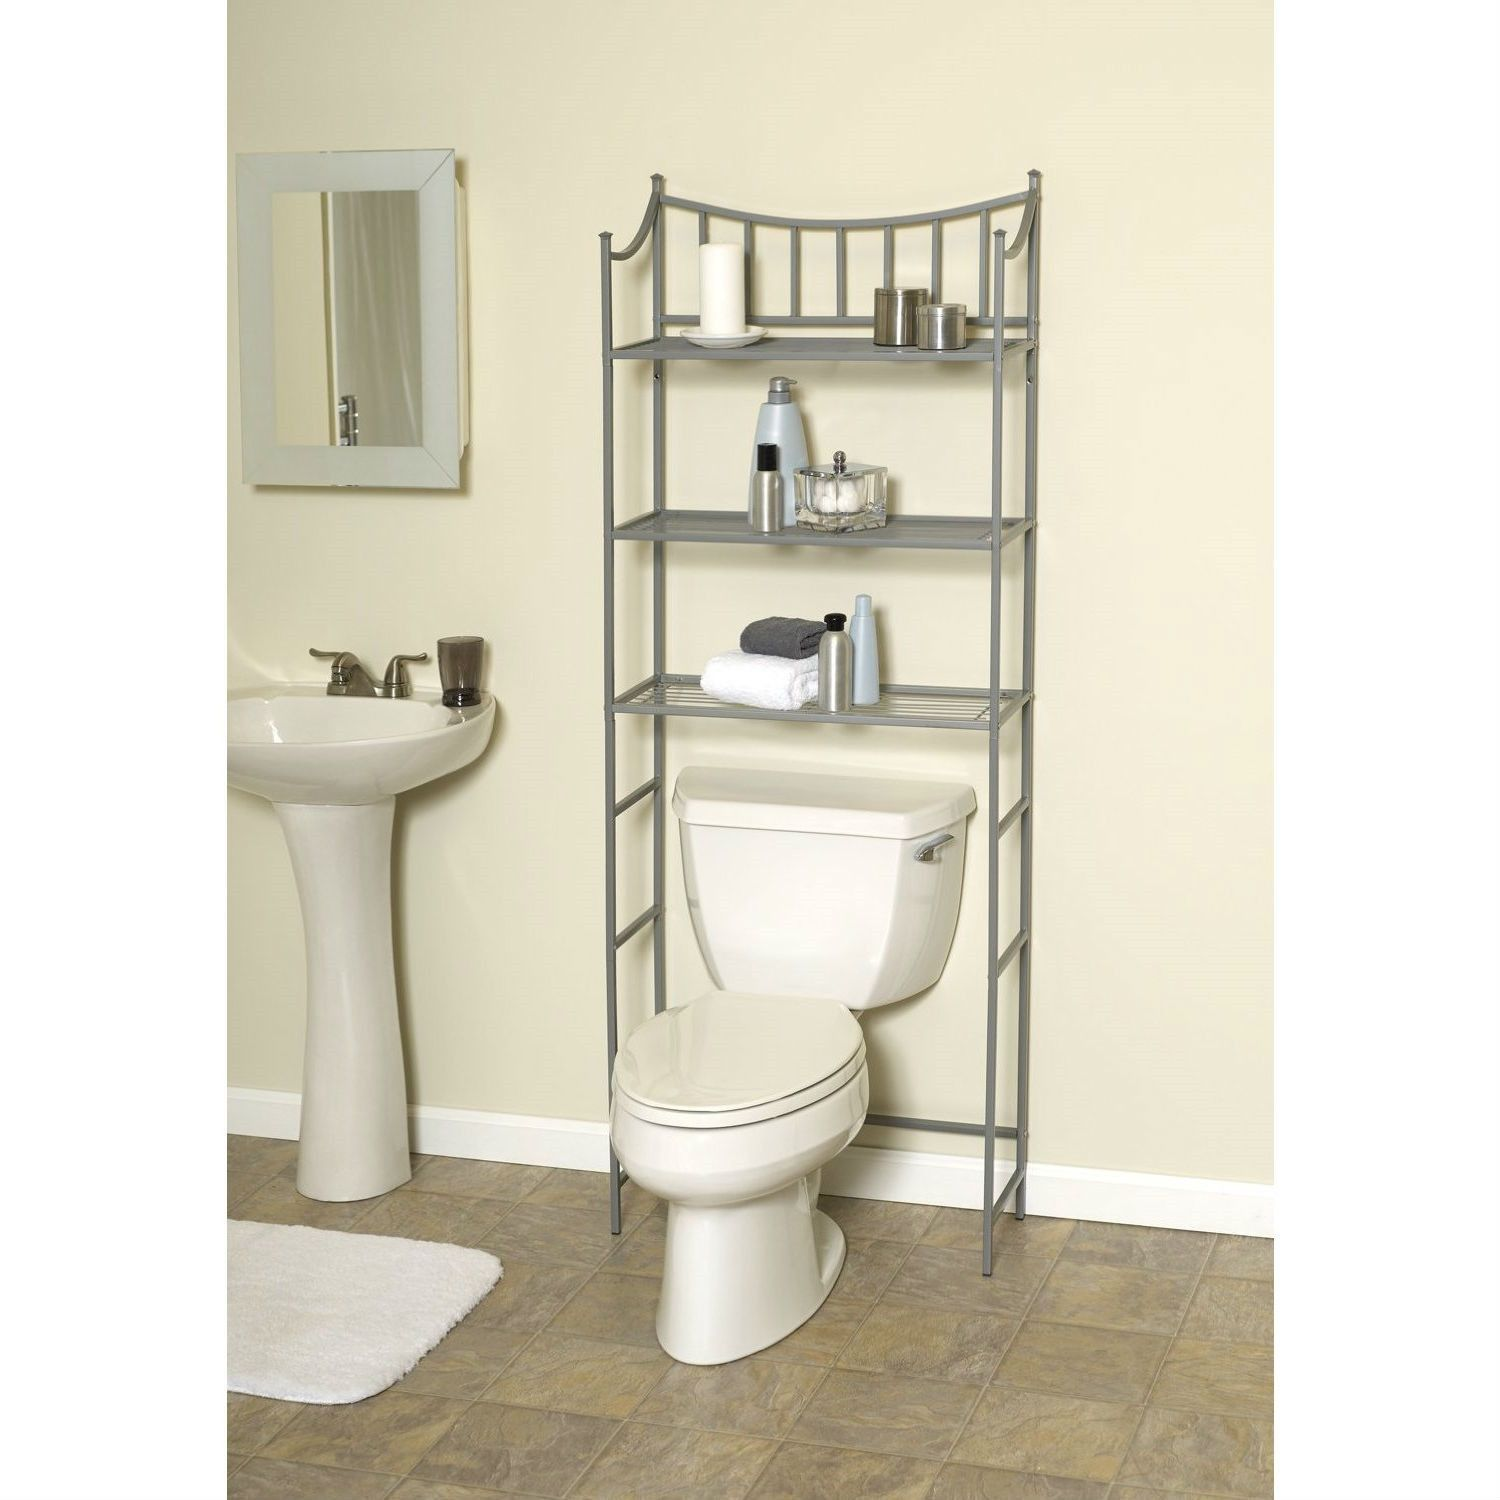 Bathroom Space Saving Over The Toilet Linen Tower Shelving Unit In